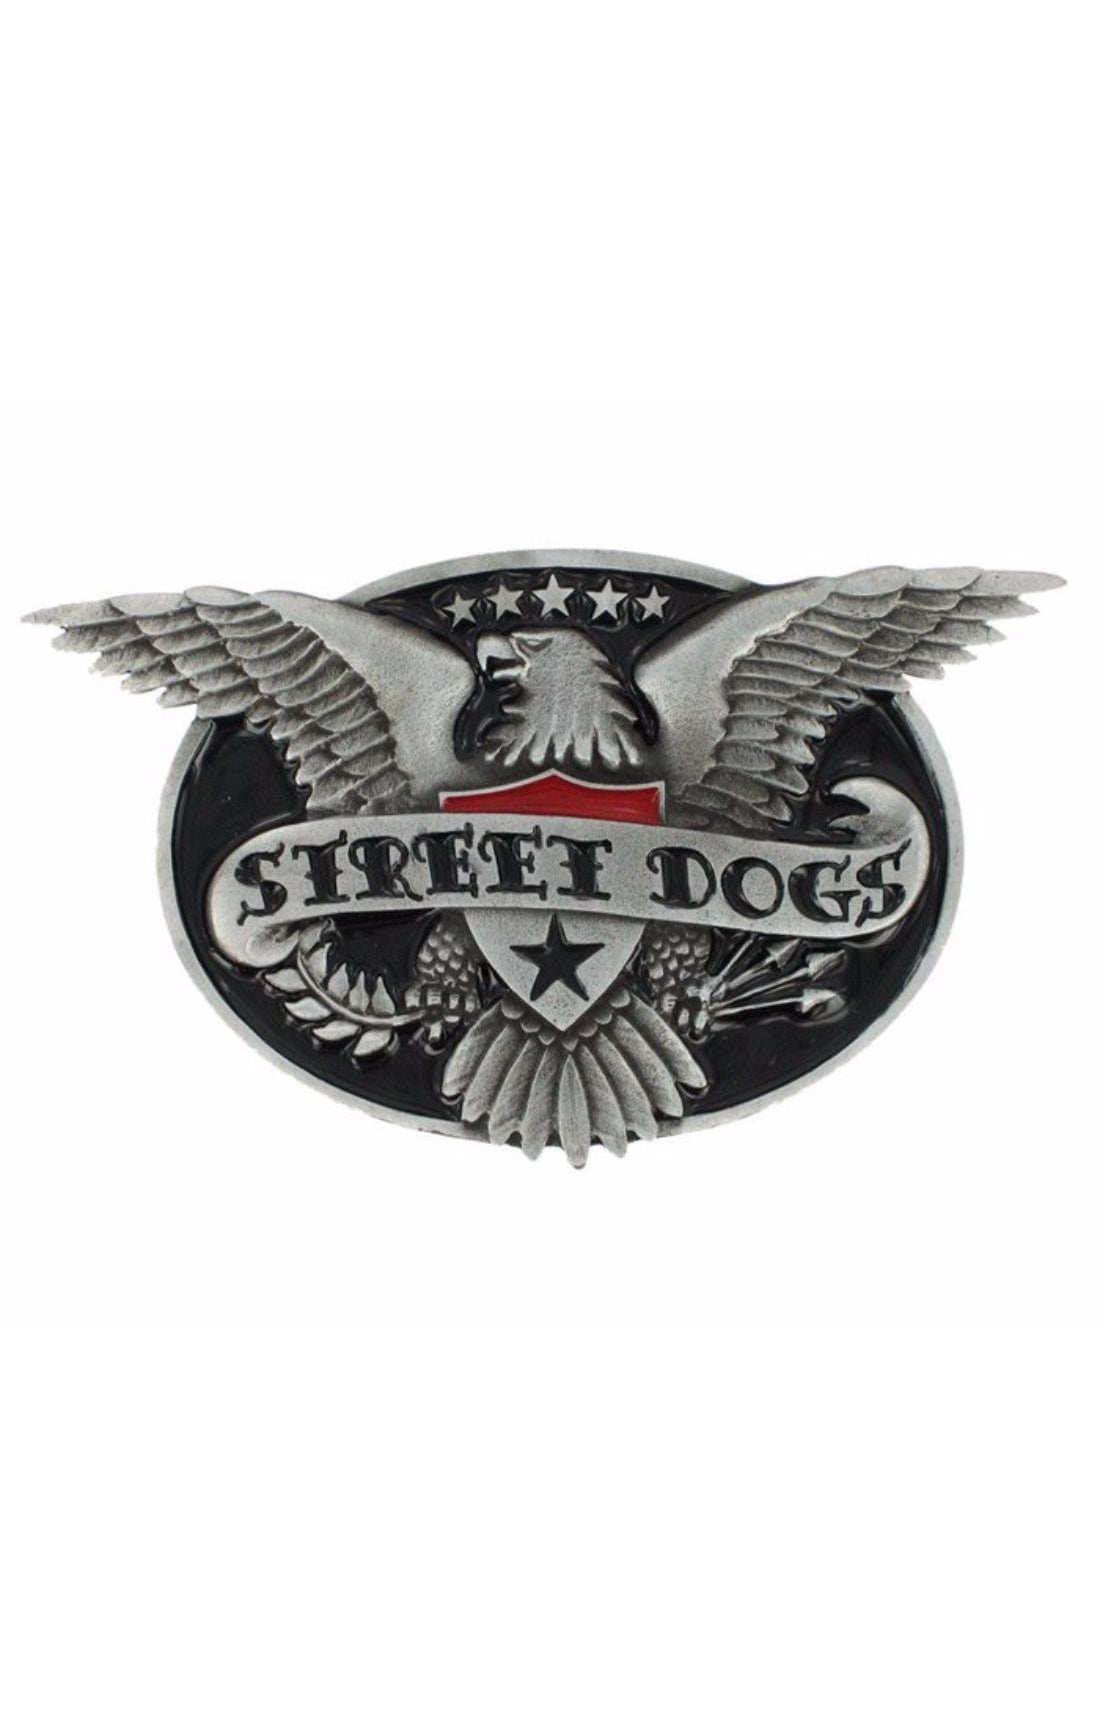 The STREET DOGS Band Buckle